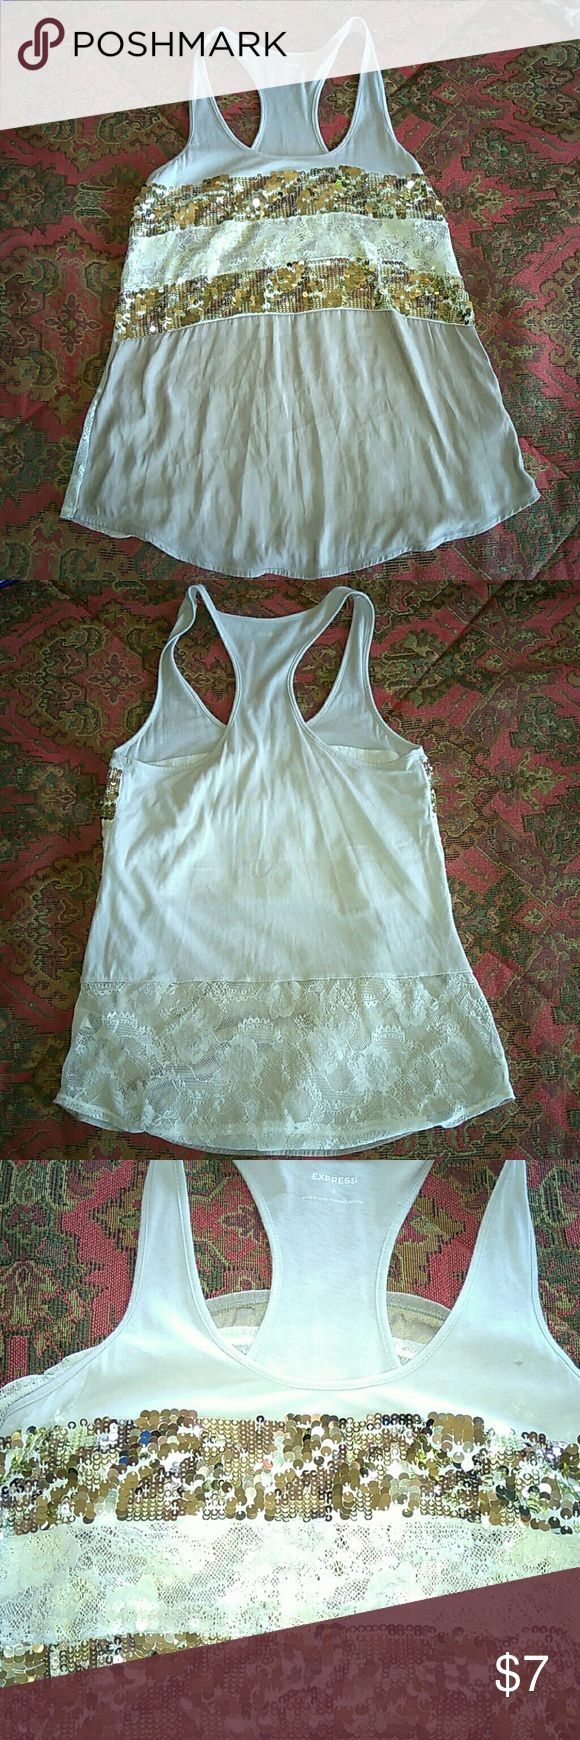 Express Cream with Gold sequins Tank Top Nice Express tan top with gold sequins and lace. Size small. Great condition with no stain or holes. Express Tops Tank Tops